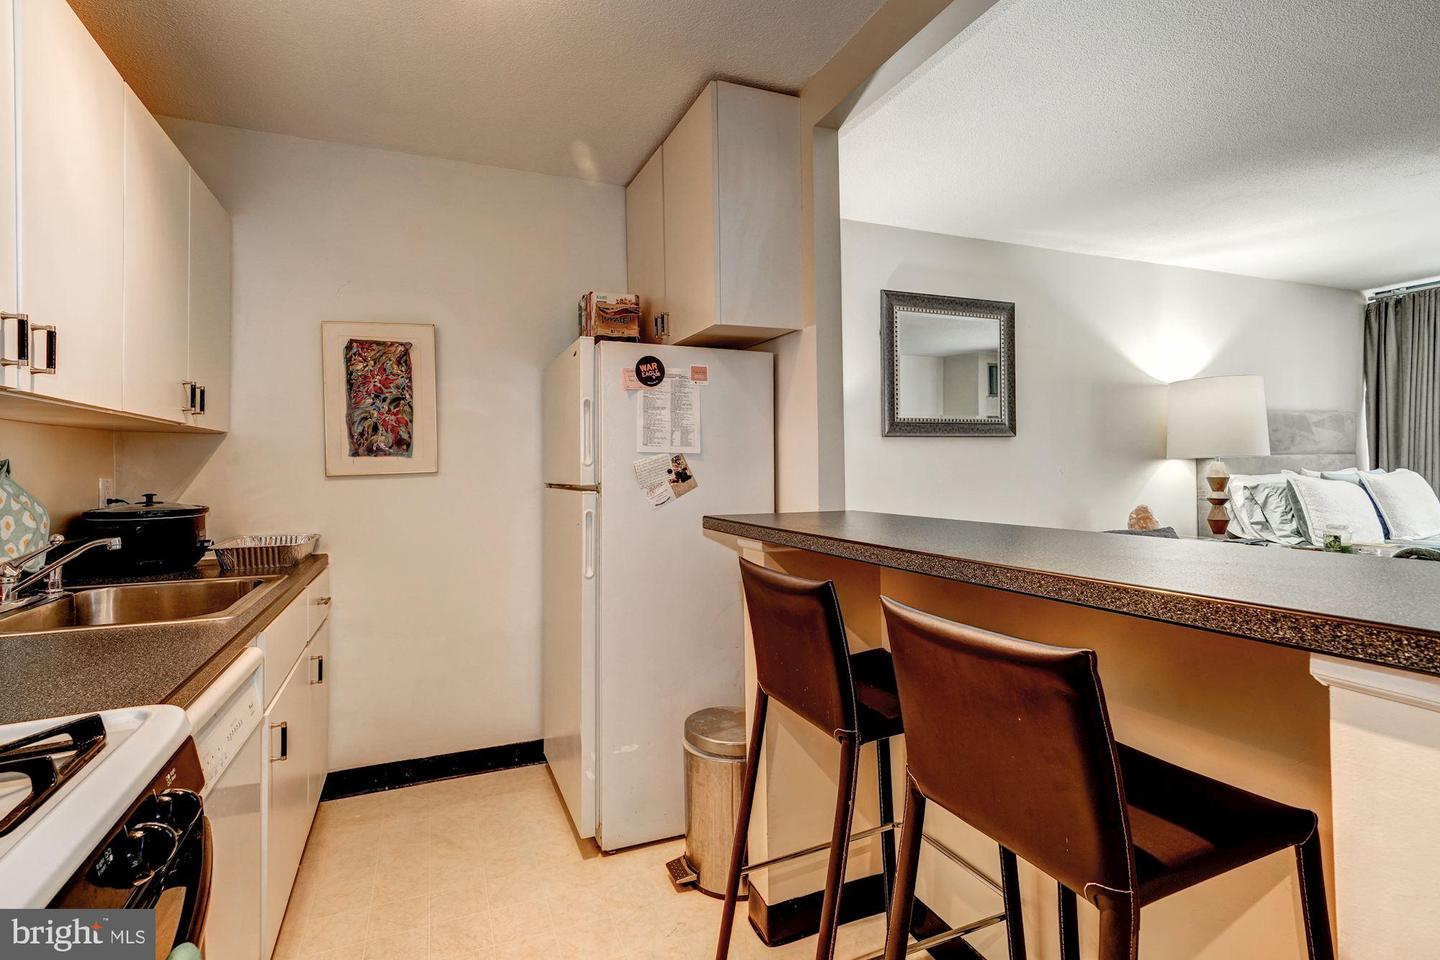 Additional photo for property listing at 1301 20th St NW #201 Washington, District Of Columbia 20036 United States